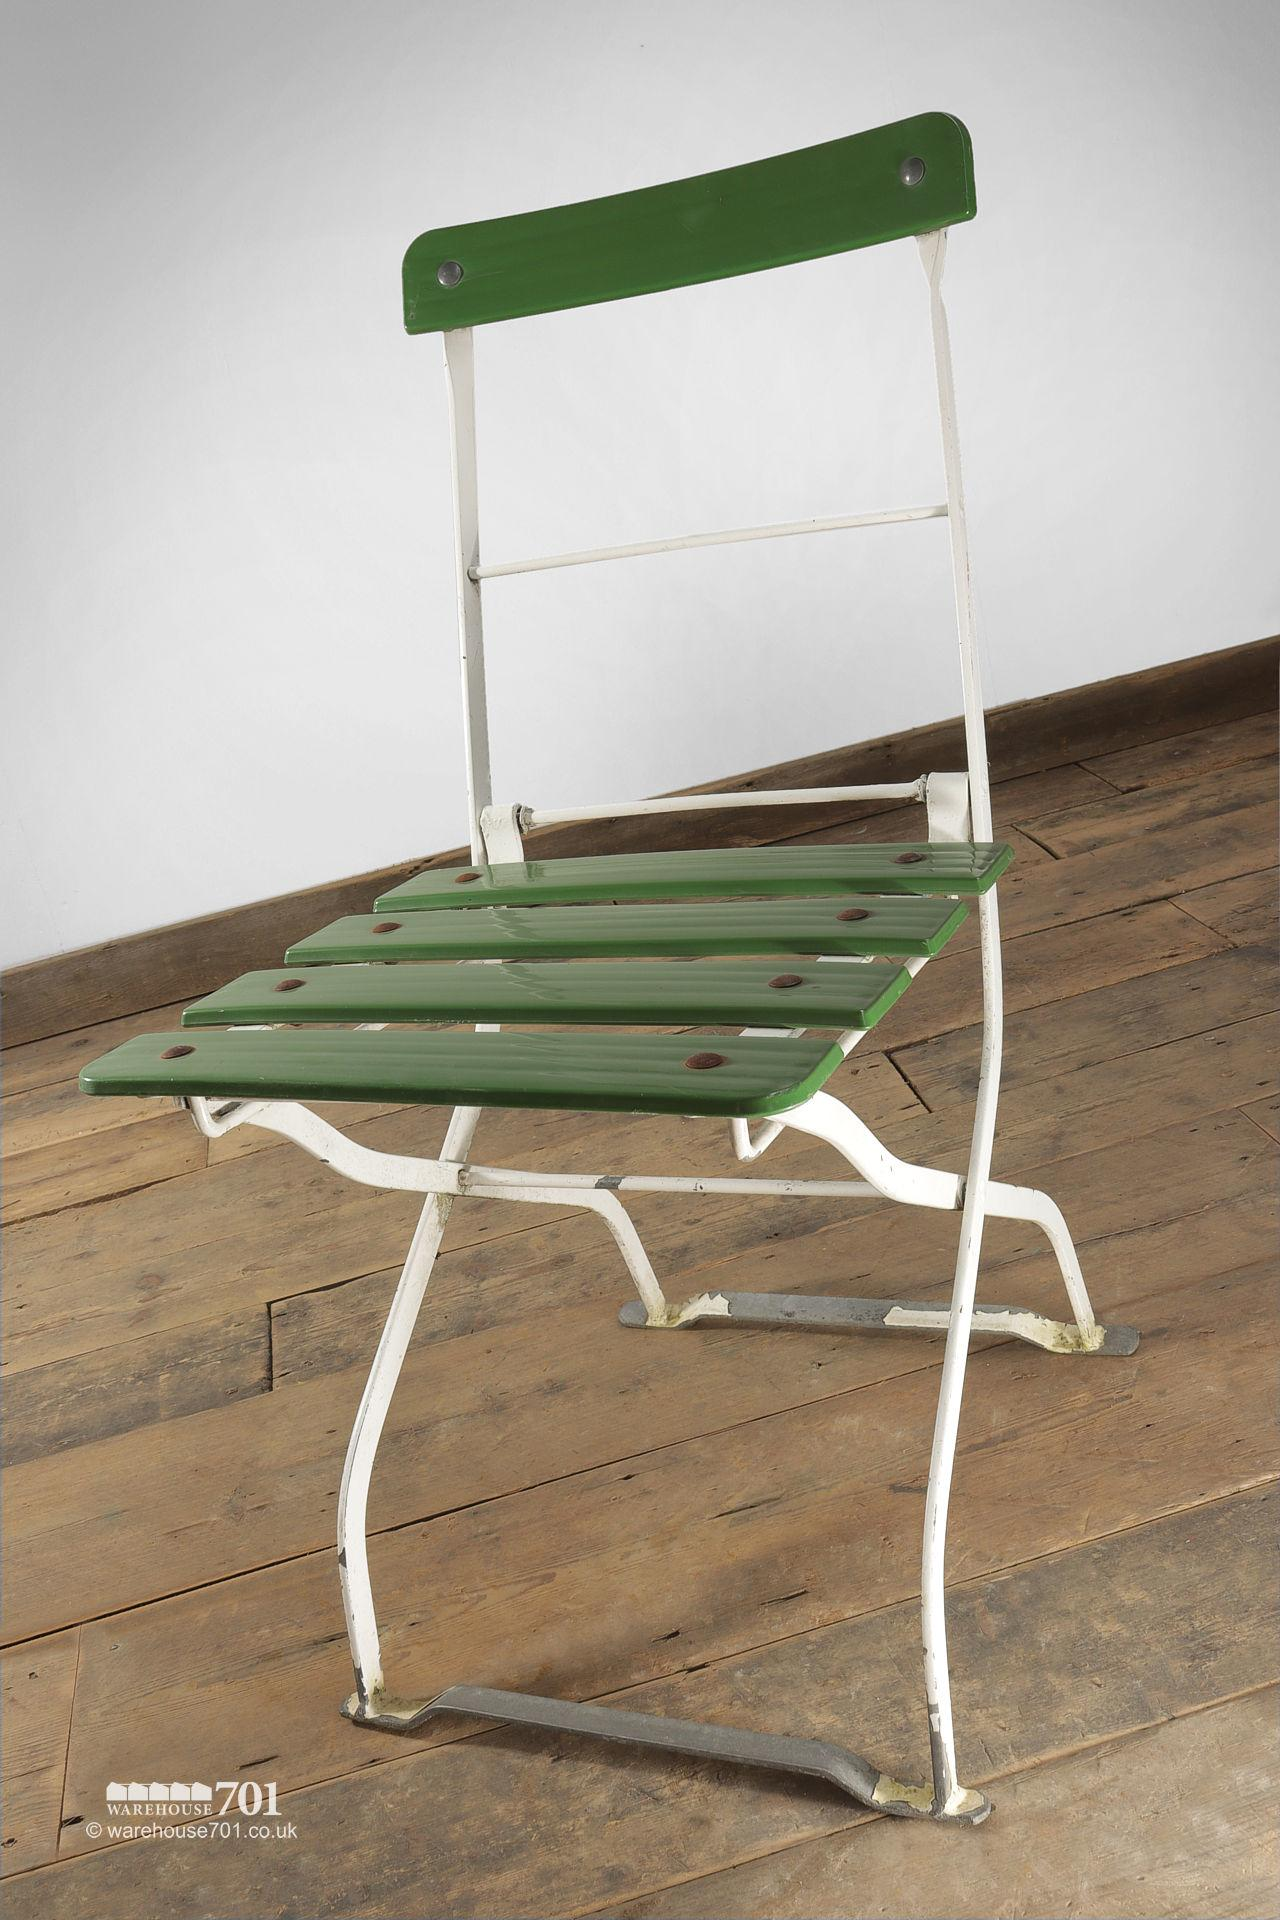 Reclaimed Green and White Garden or Cafe Table and Chairs #6